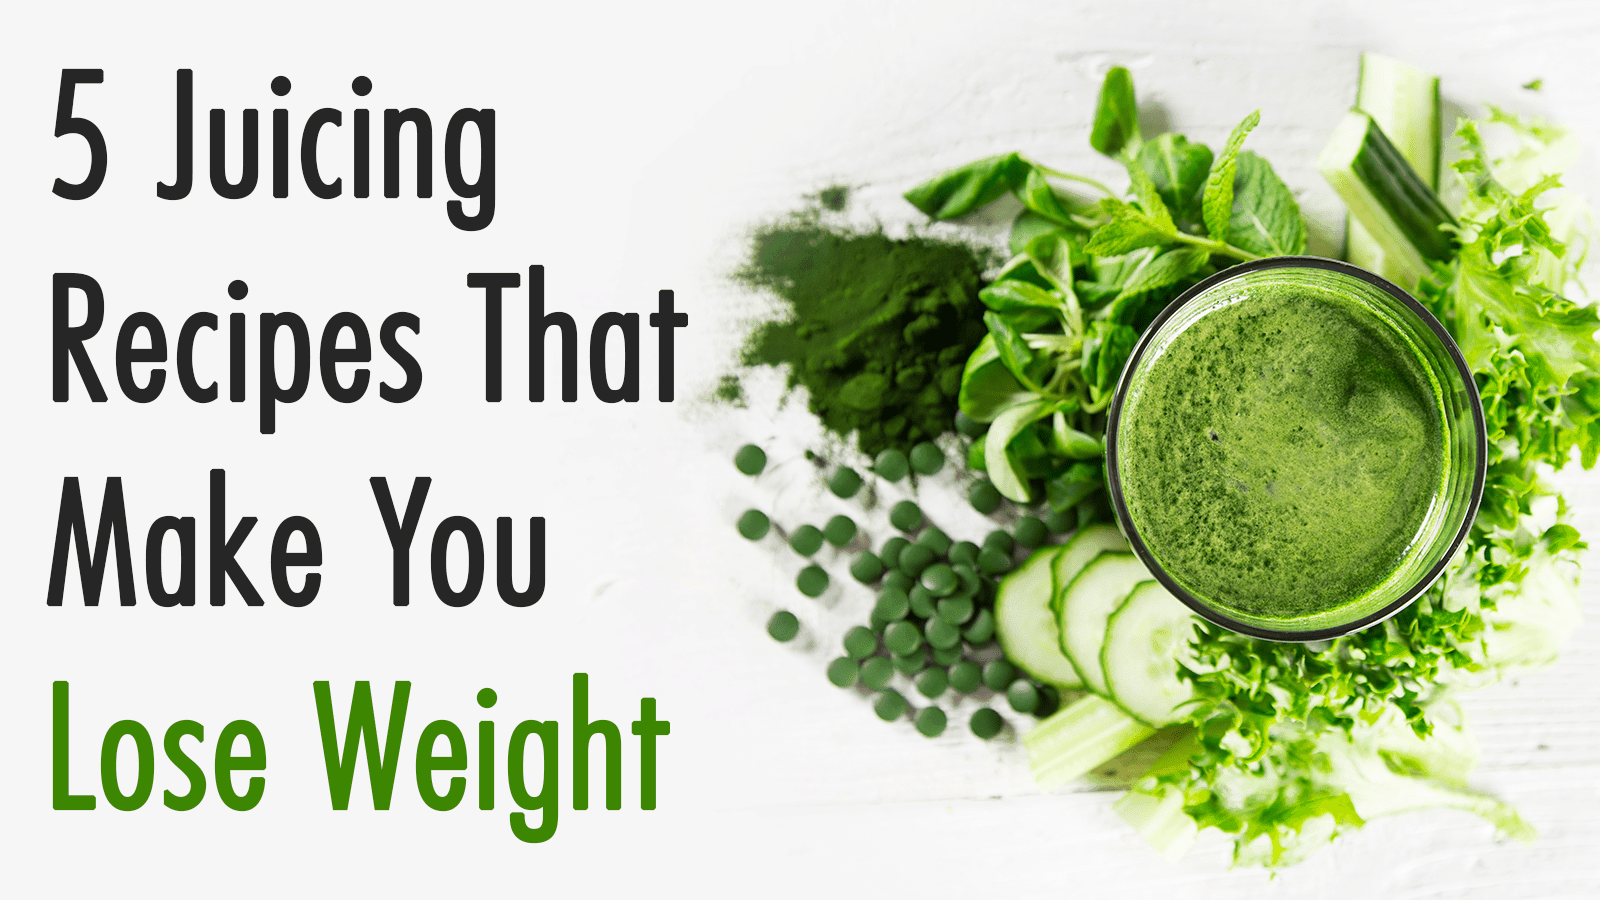 lose weight juicing recipes